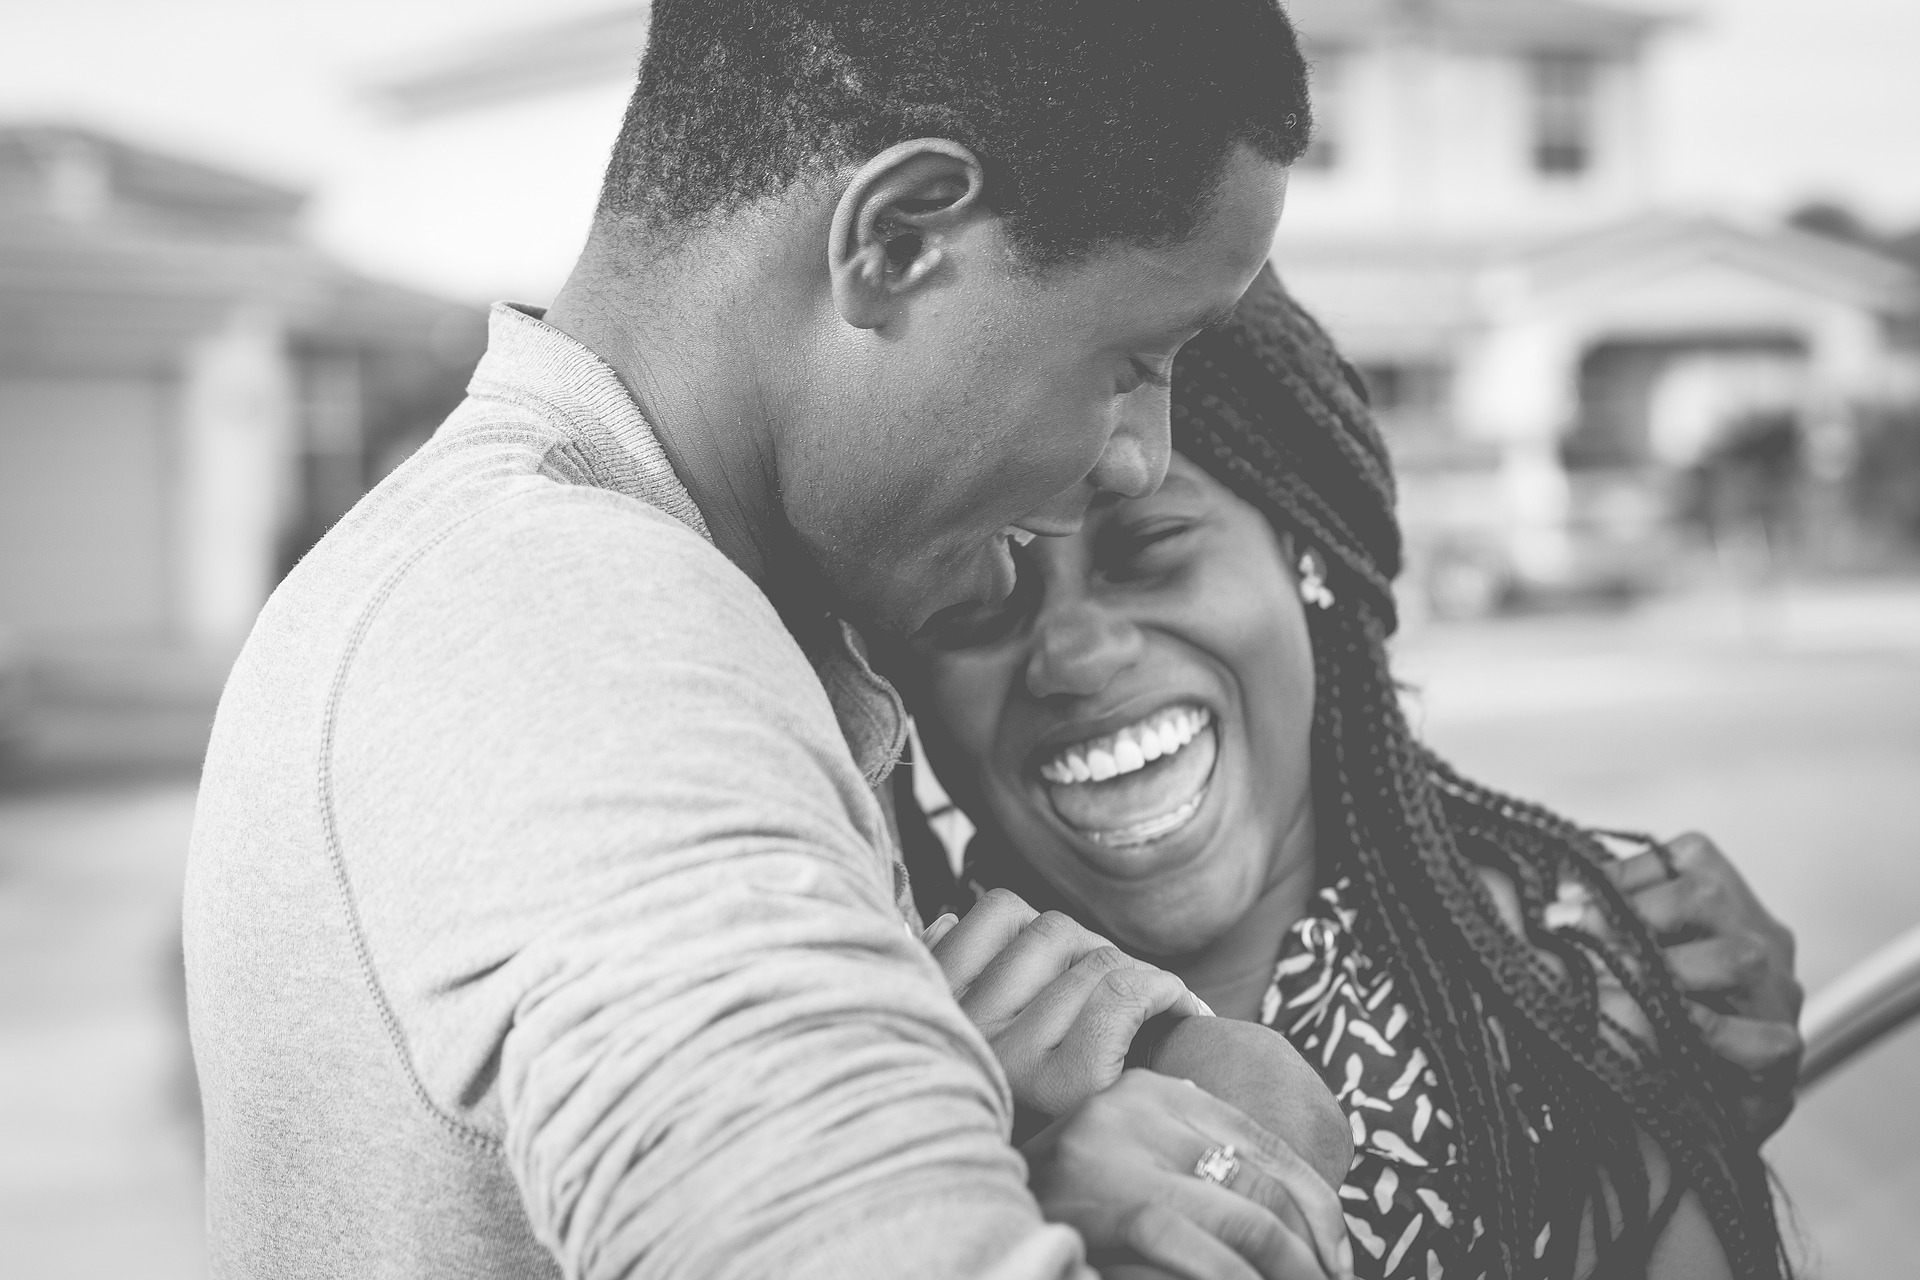 Have one thankful thought every day. Pictured: Couple hugging and laughing.